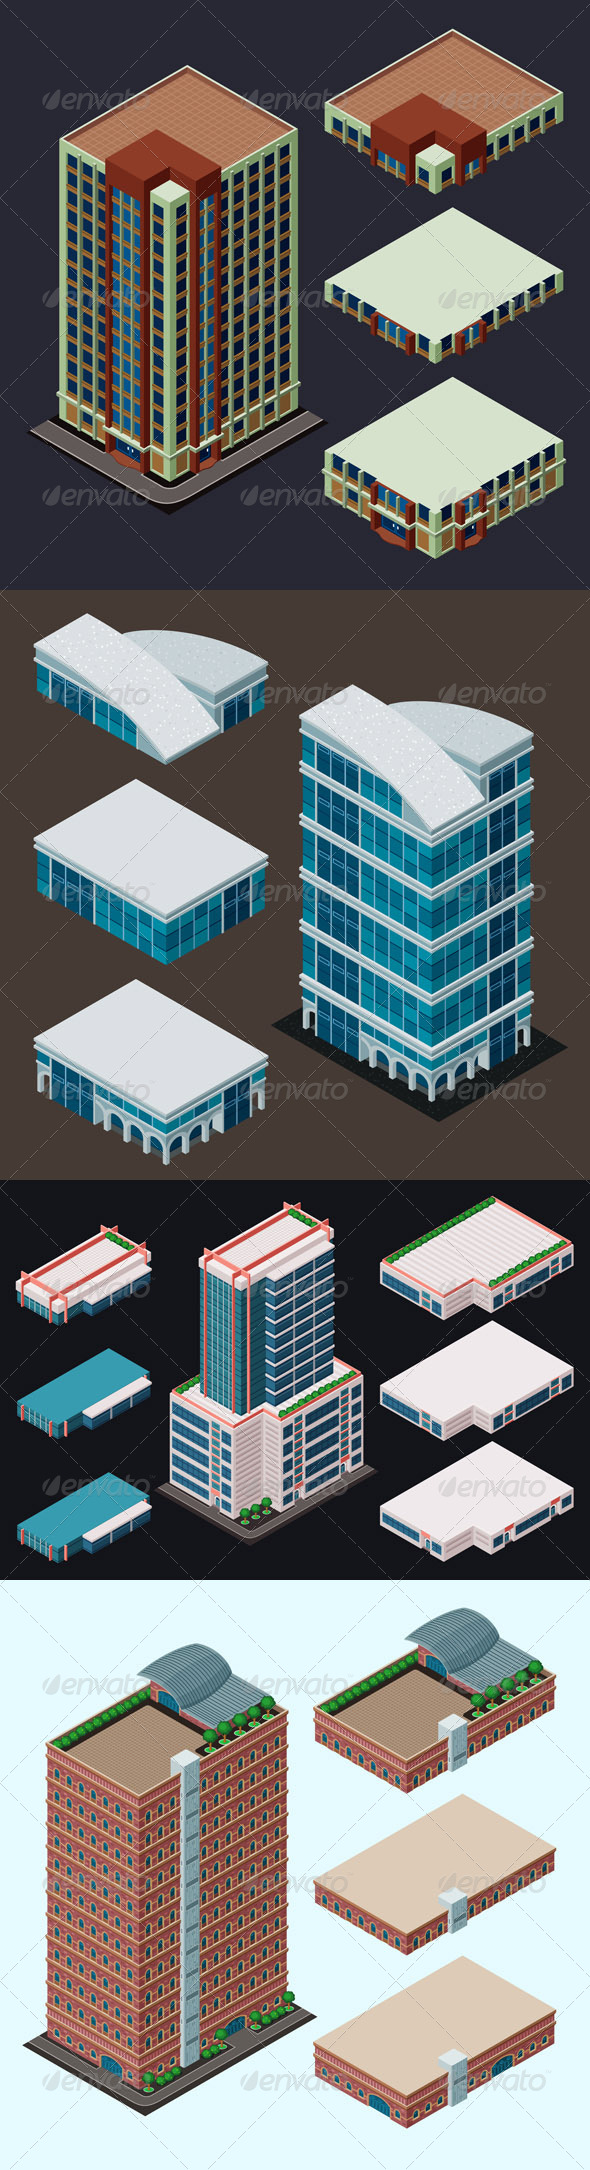 GraphicRiver Isometric Modern Building 7858181